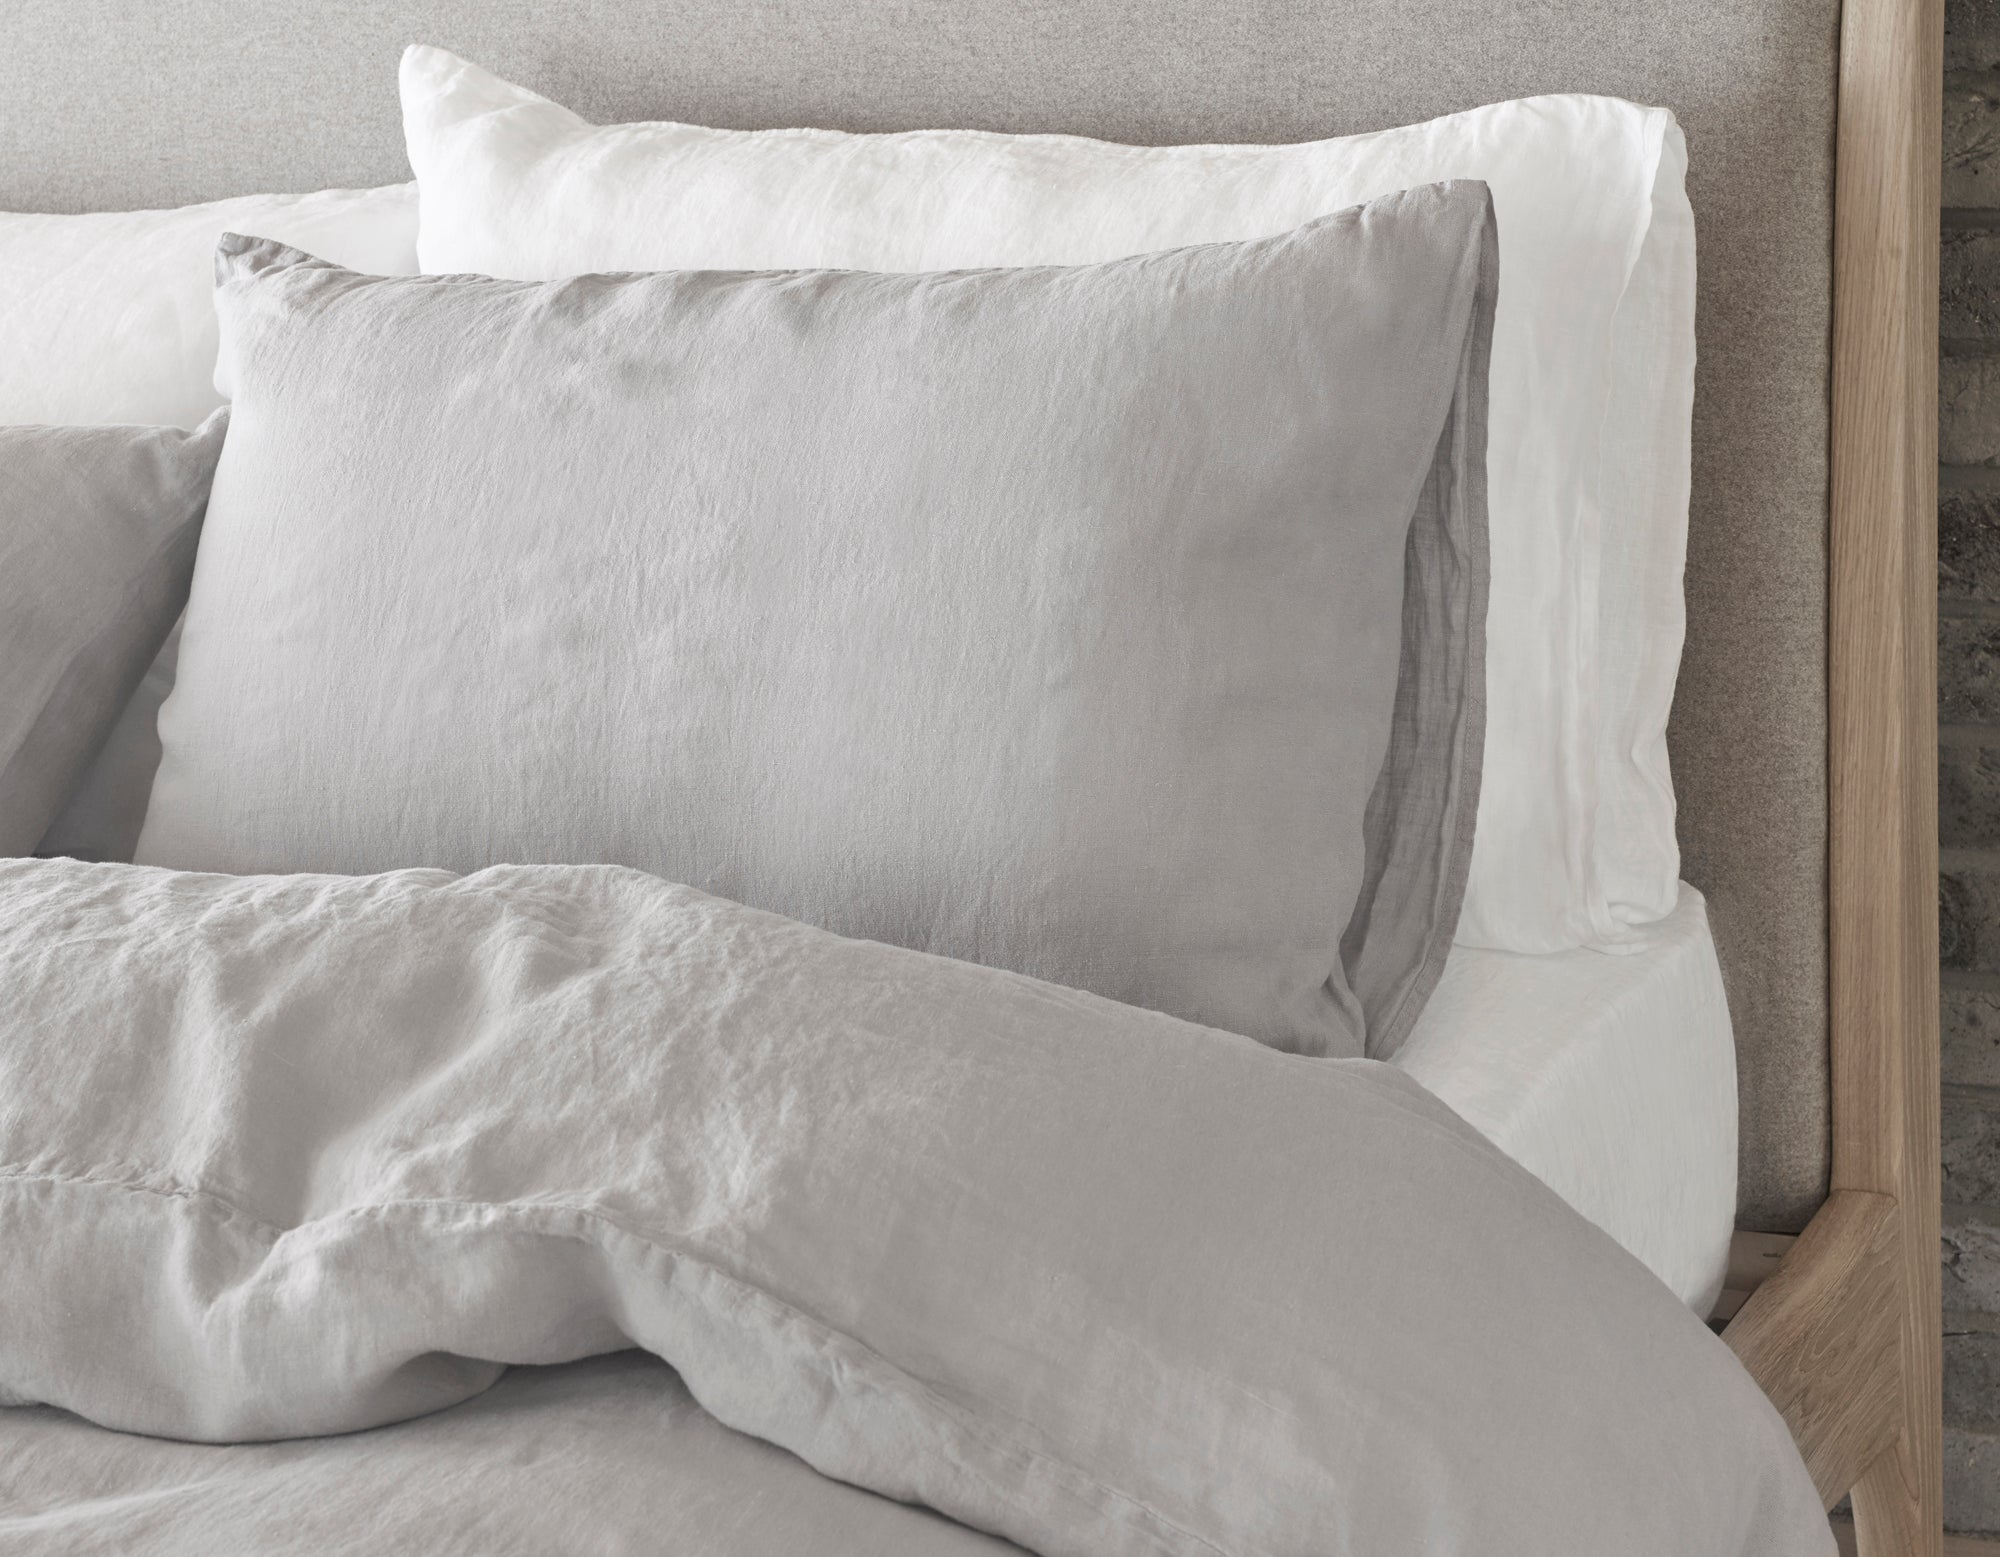 Linen Duvet Cover Close Up in Calm Grey | scooms